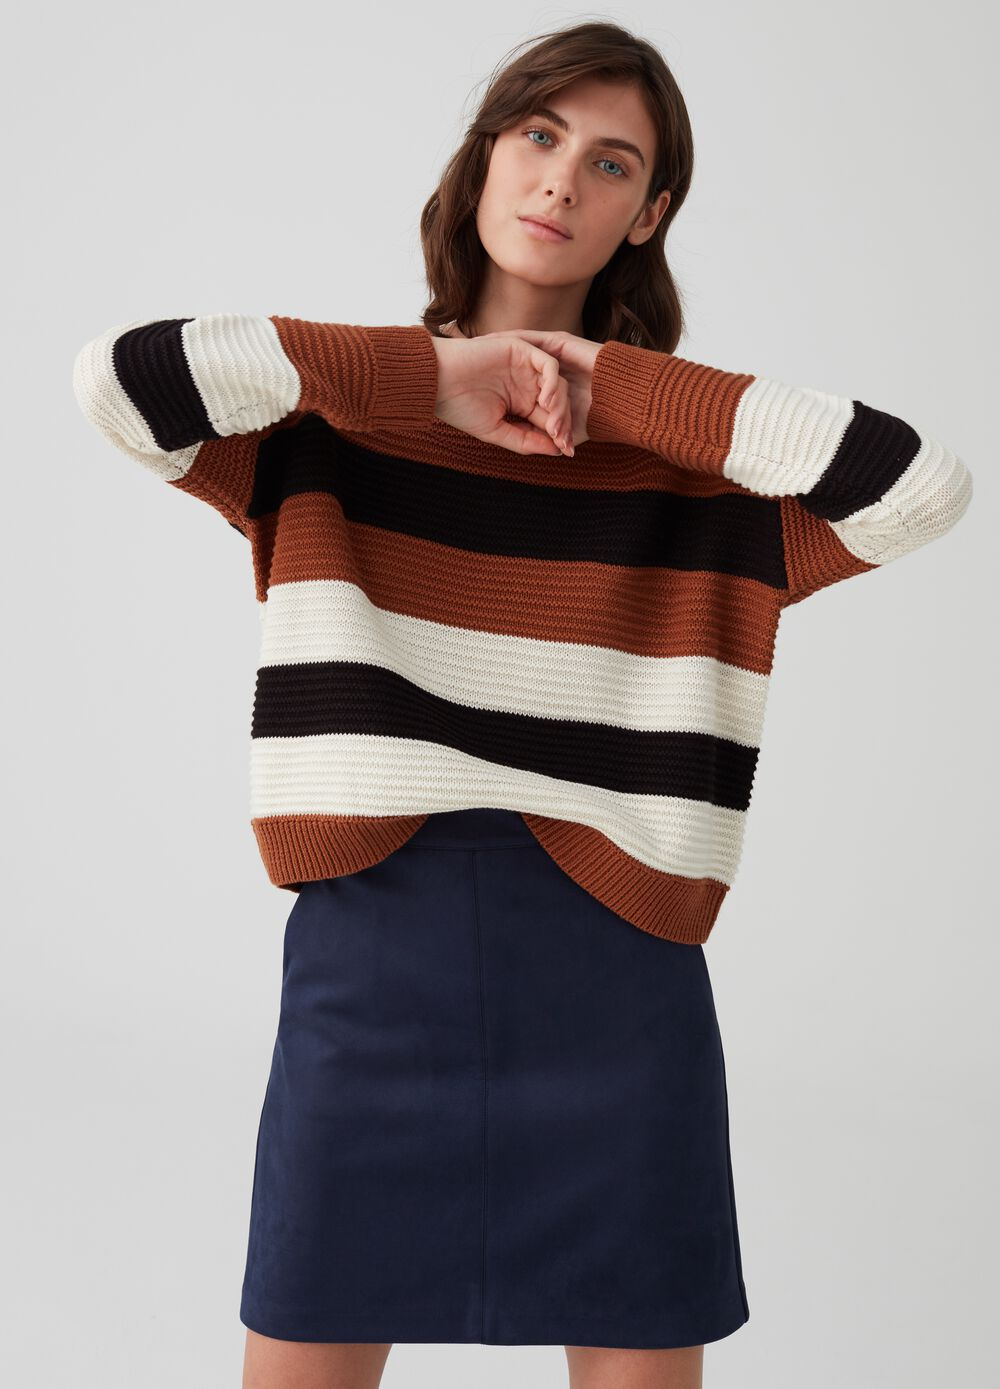 Knitted pullover with buttons and striped pattern